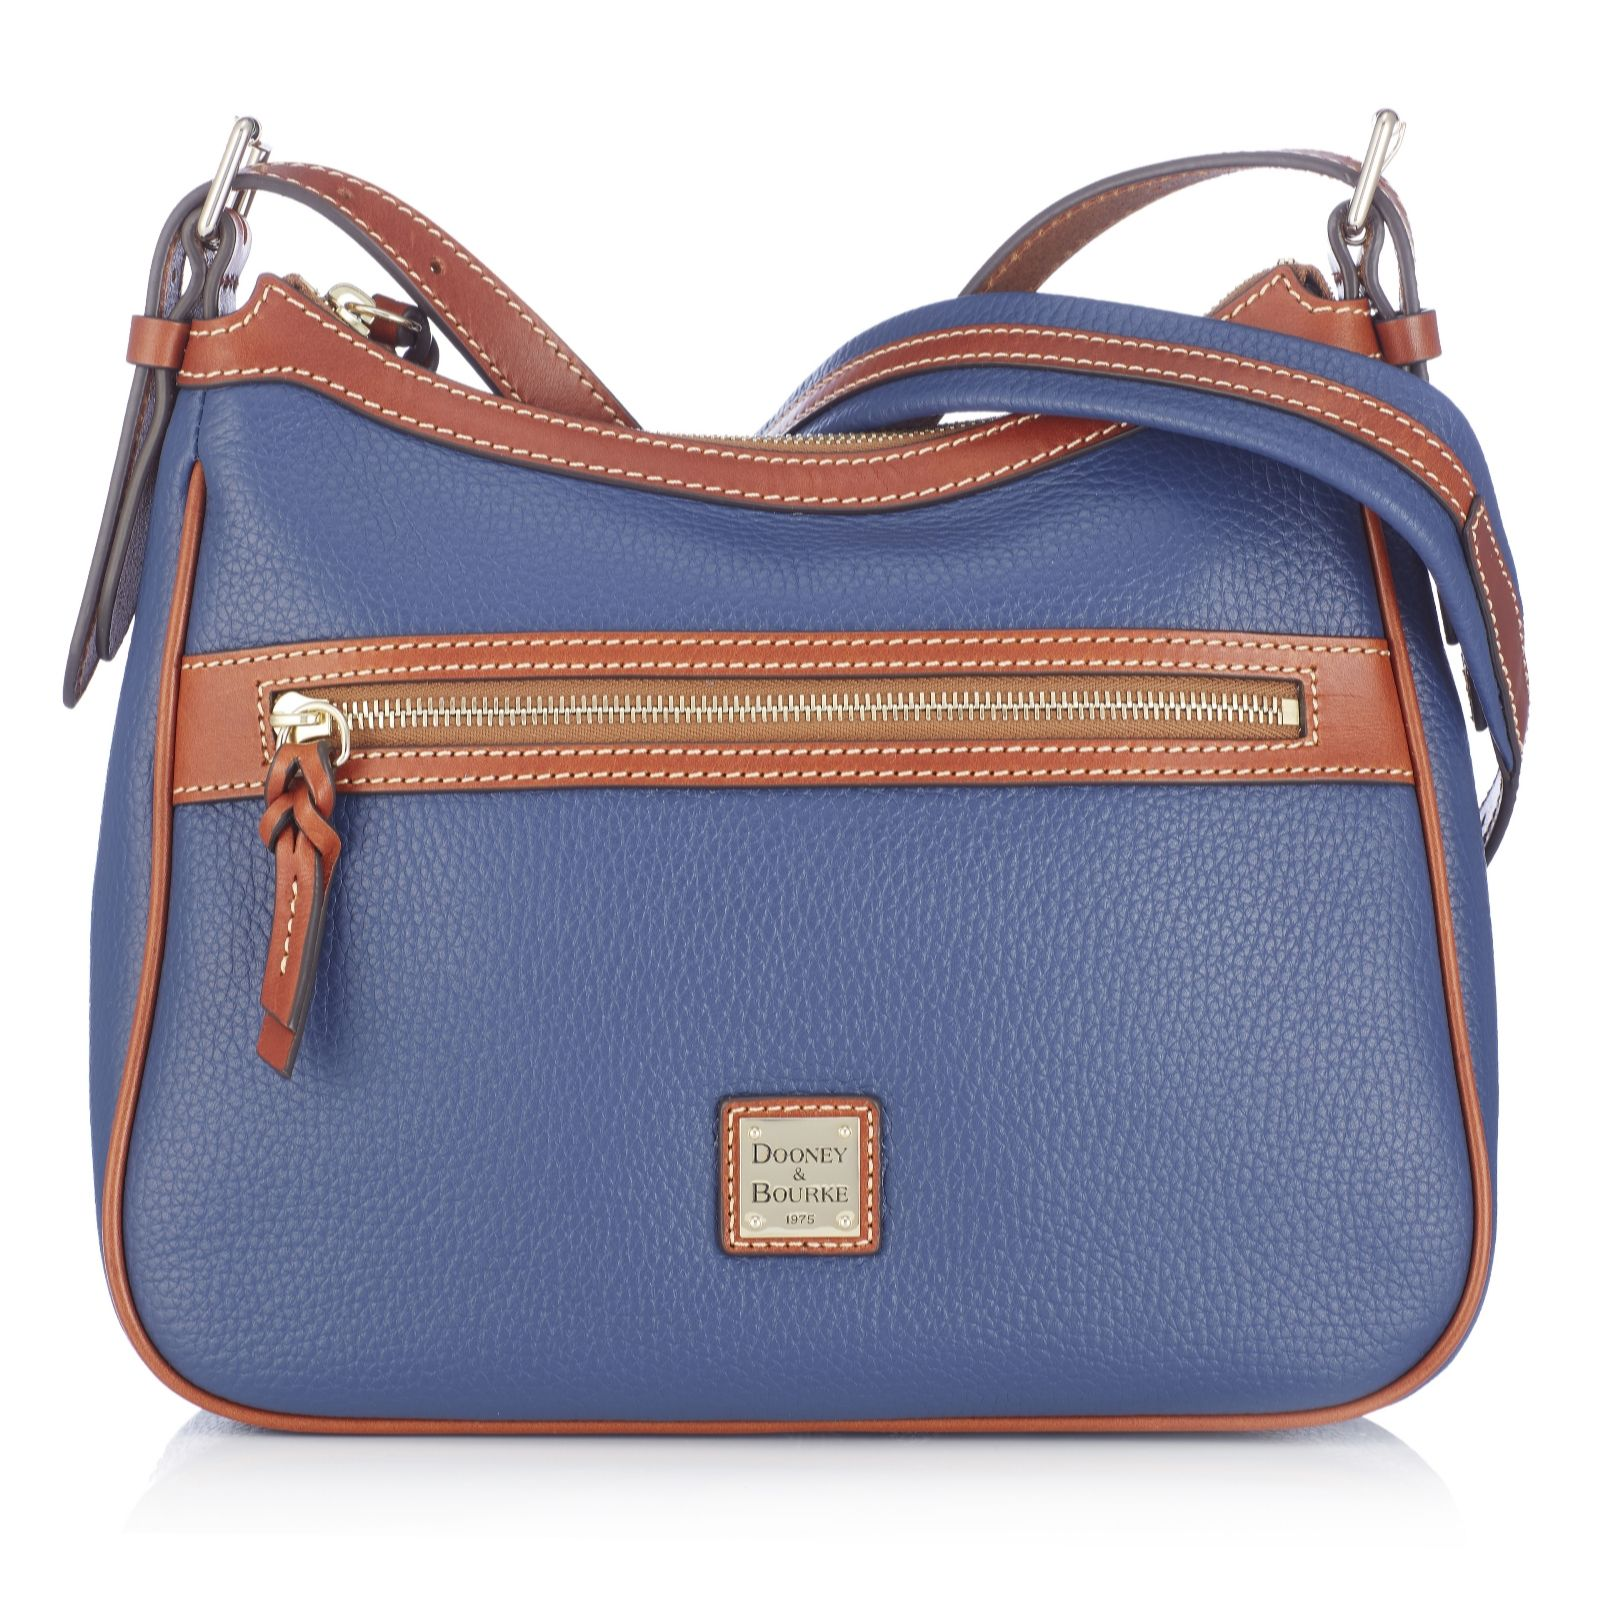 dae172cb6 Product Detail. Product Detail. Dooney Bourke Piper Pebble Leather  Crossbody Bag ...